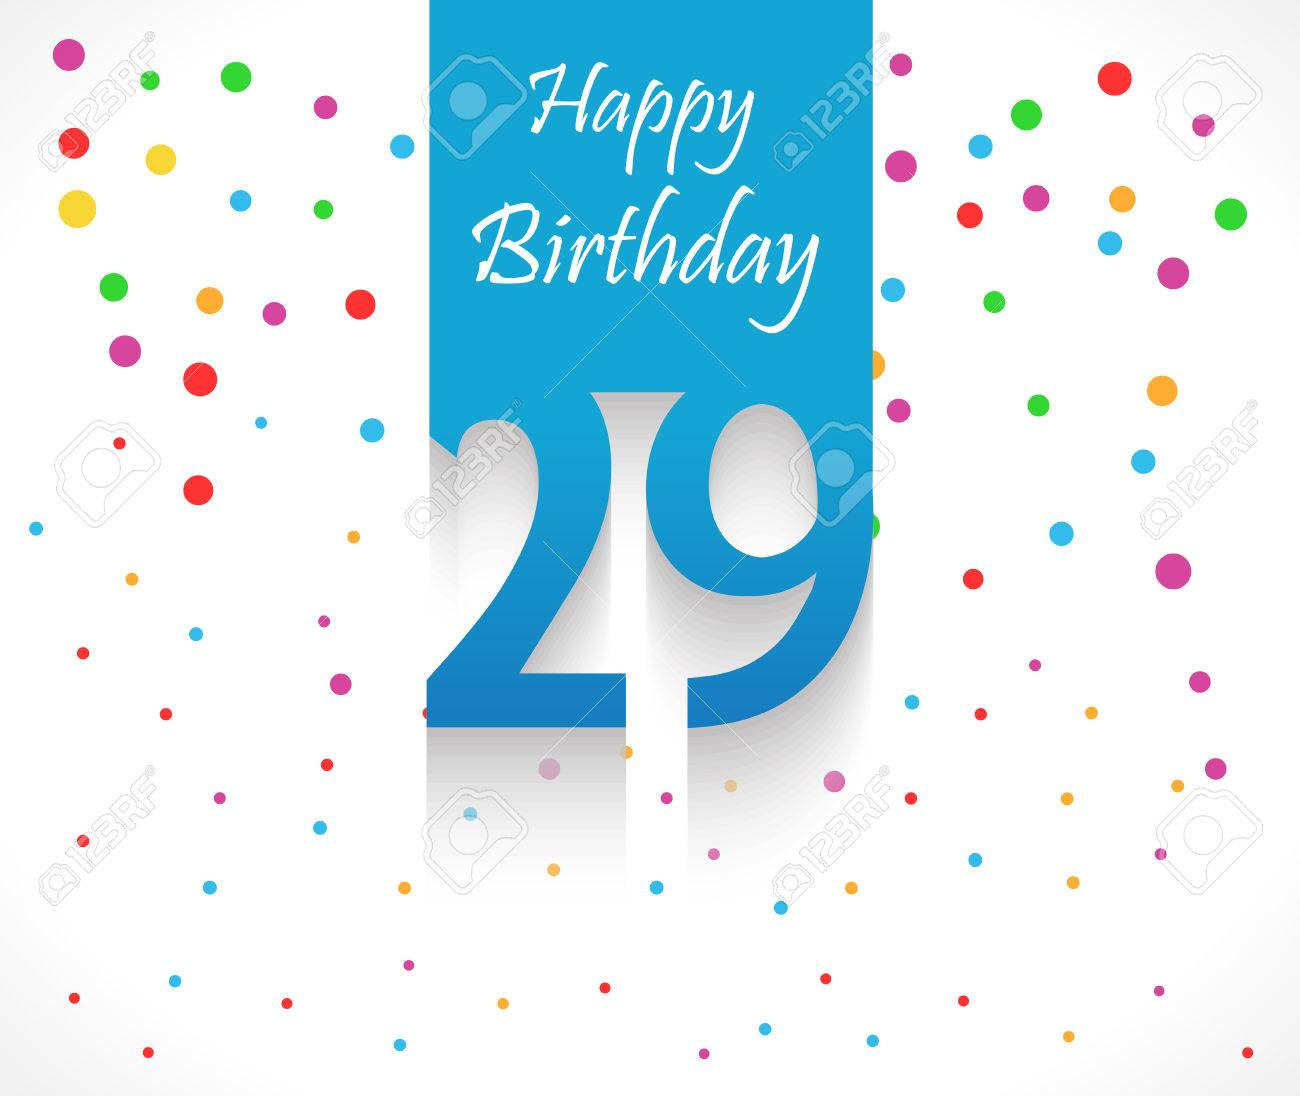 29 years happy birthday background or card with colorful confetti 29 years happy birthday background or card with colorful confetti with polka dots vector eps10 bookmarktalkfo Images